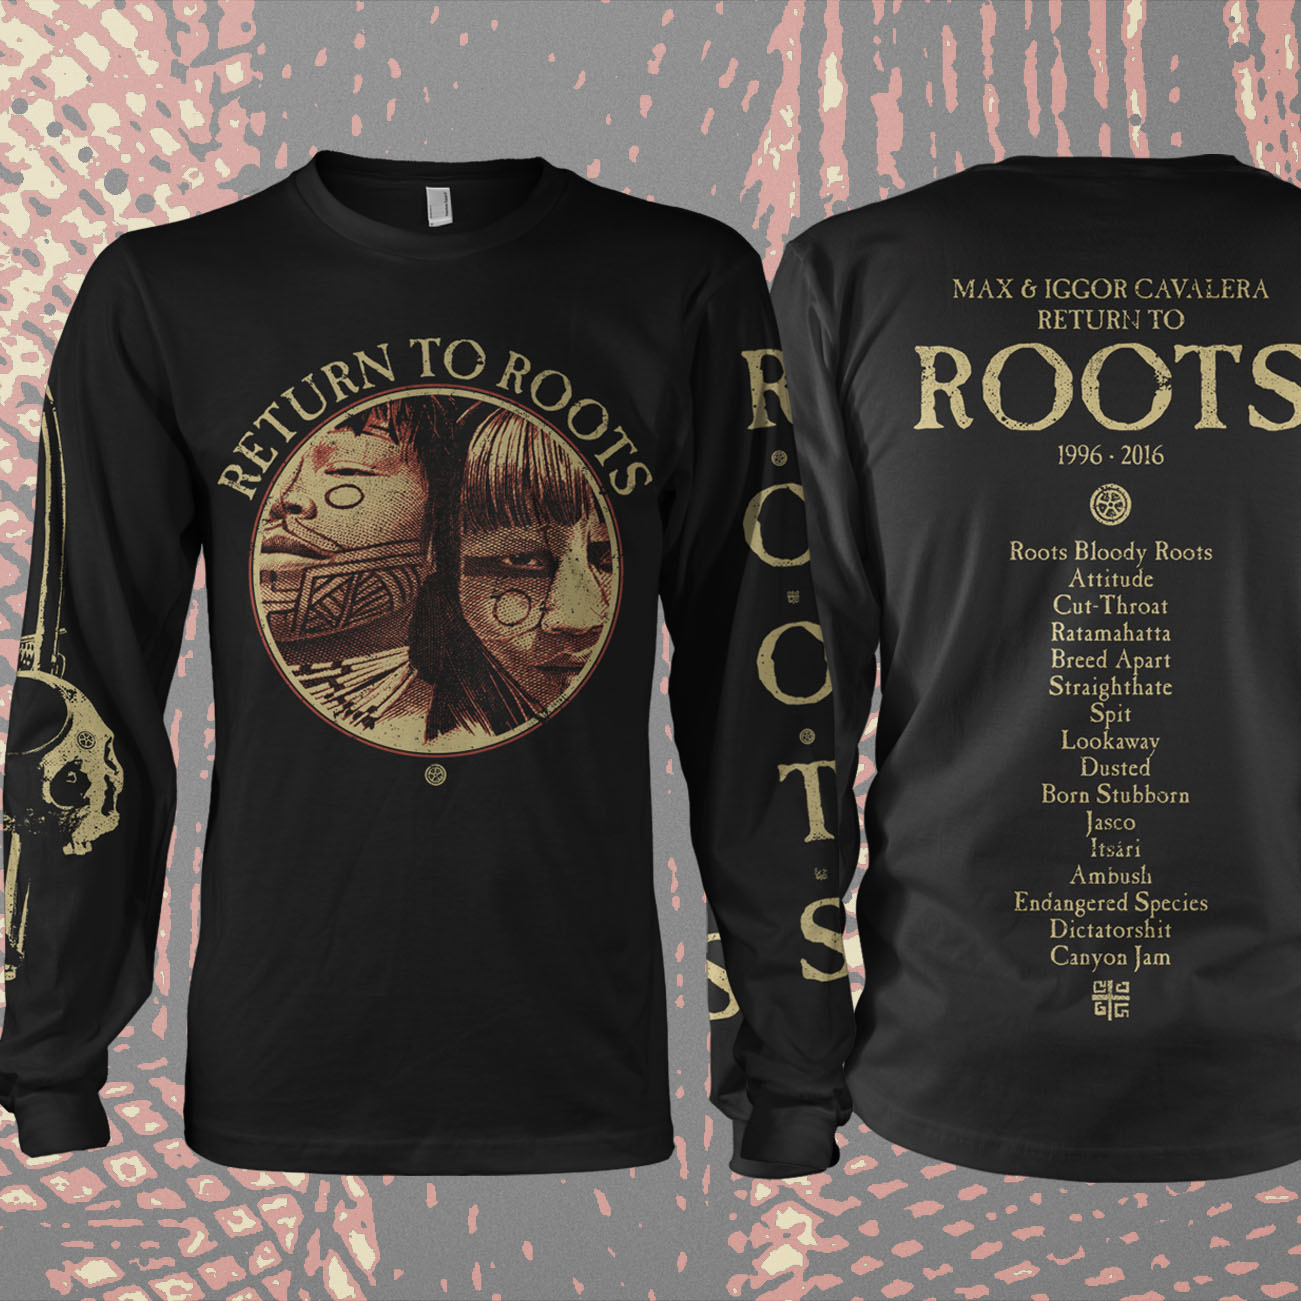 Return to Roots - 'Tracks' Longsleeve T-Shirt - Soulfly